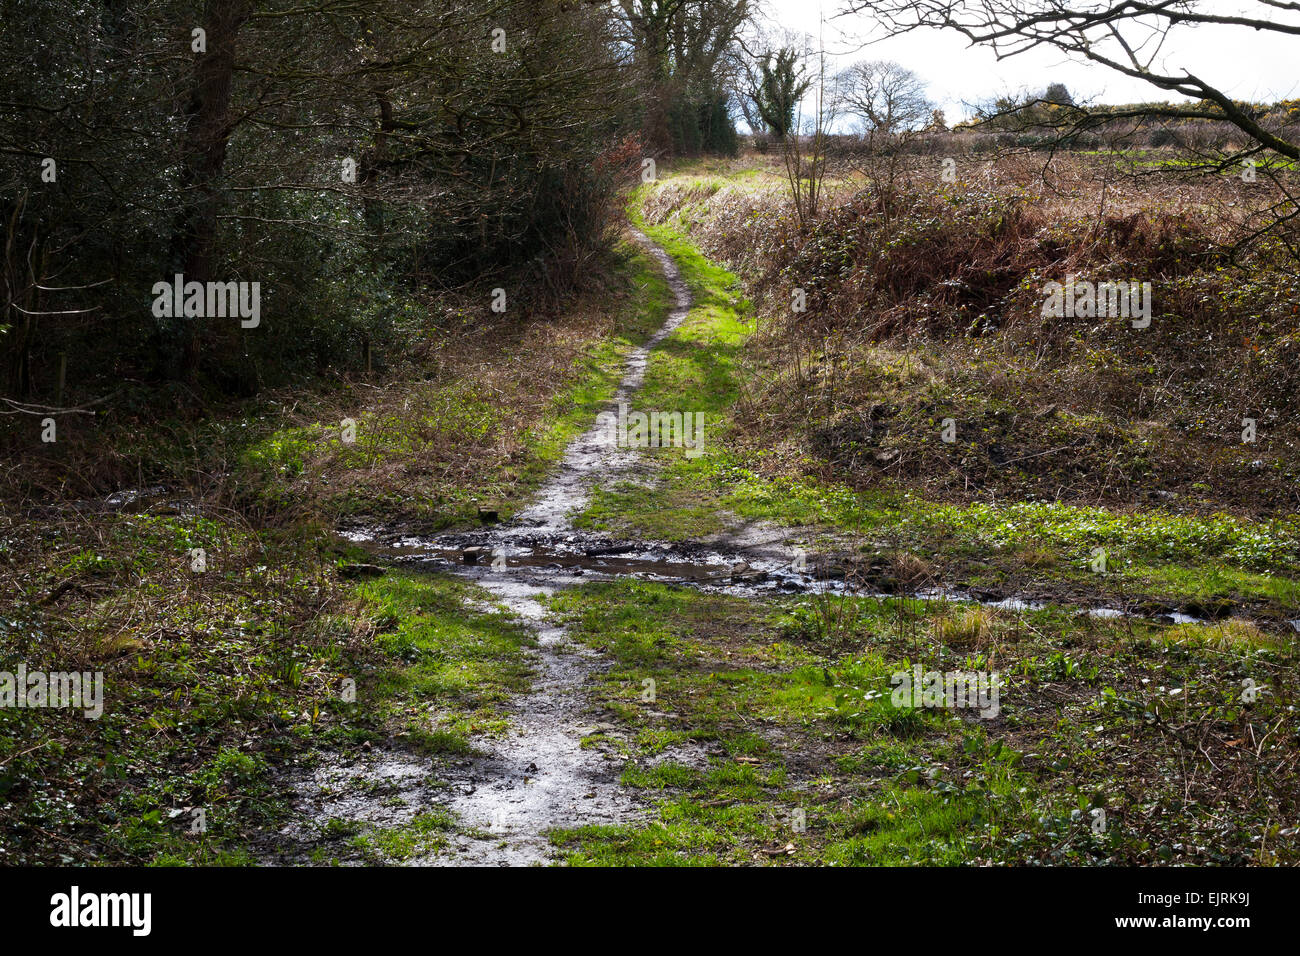 A public right of way running through the countryside in County Durham. - Stock Image